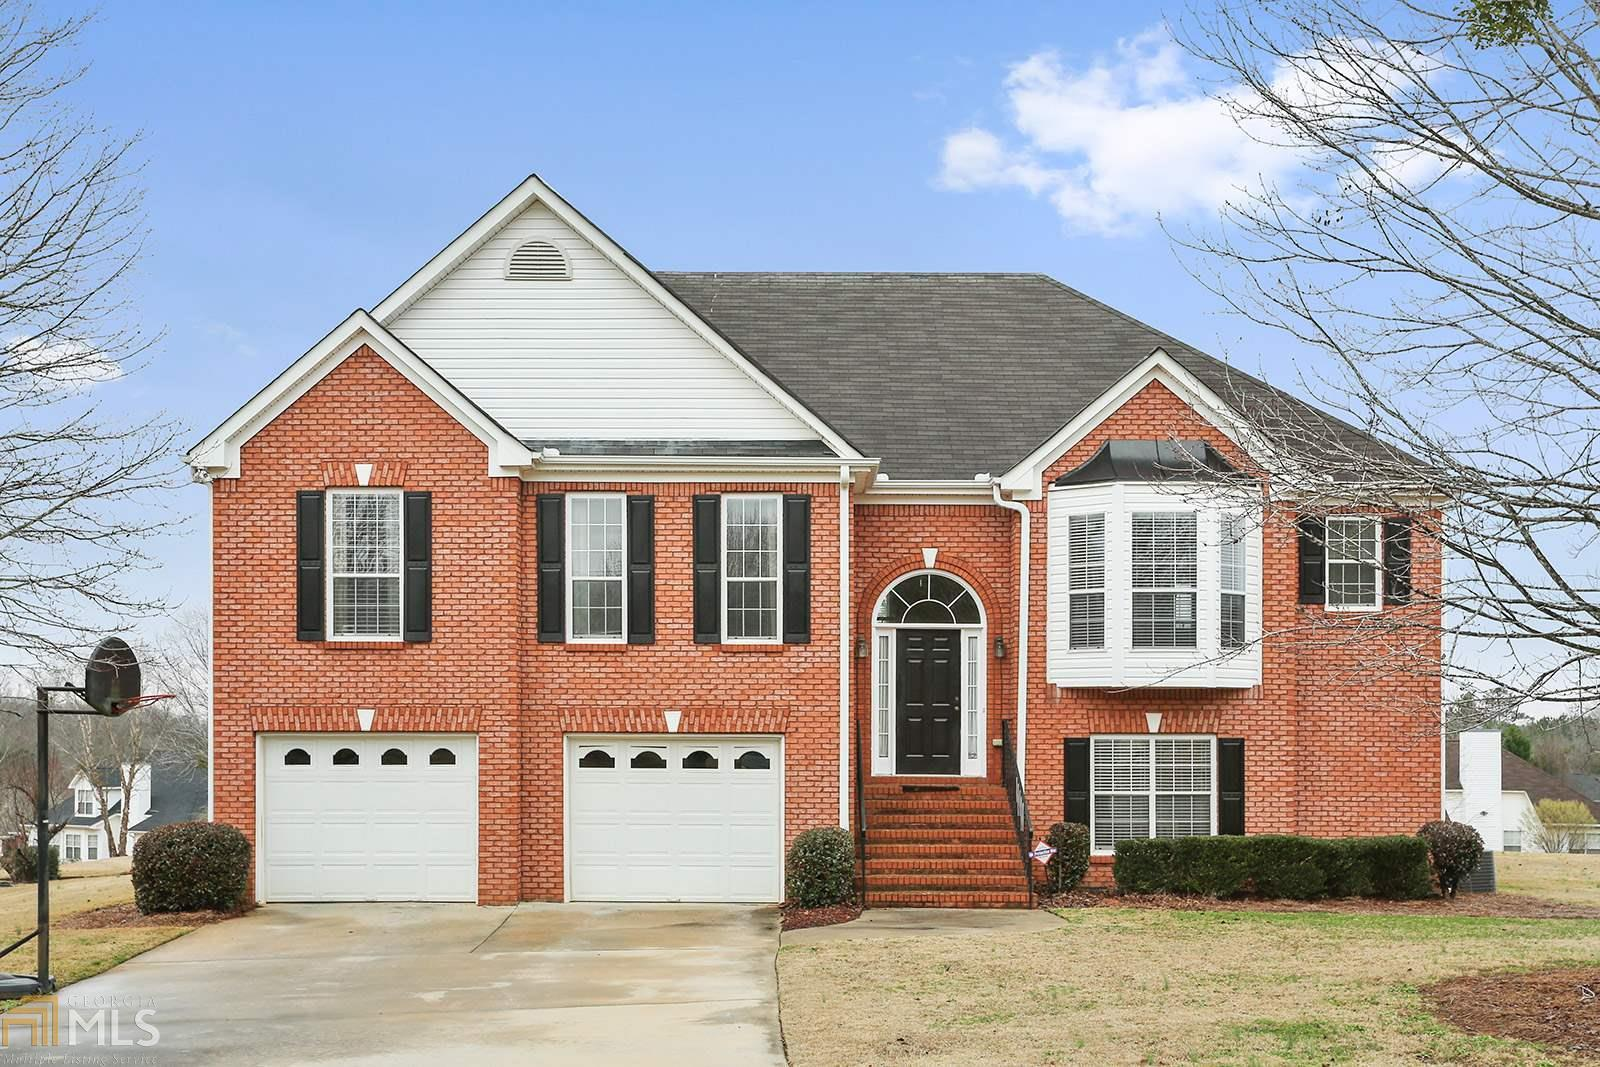 1410 norwich ct conyers ga mls 8336604 better homes and gardens real estate for Better homes and gardens real estate rentals